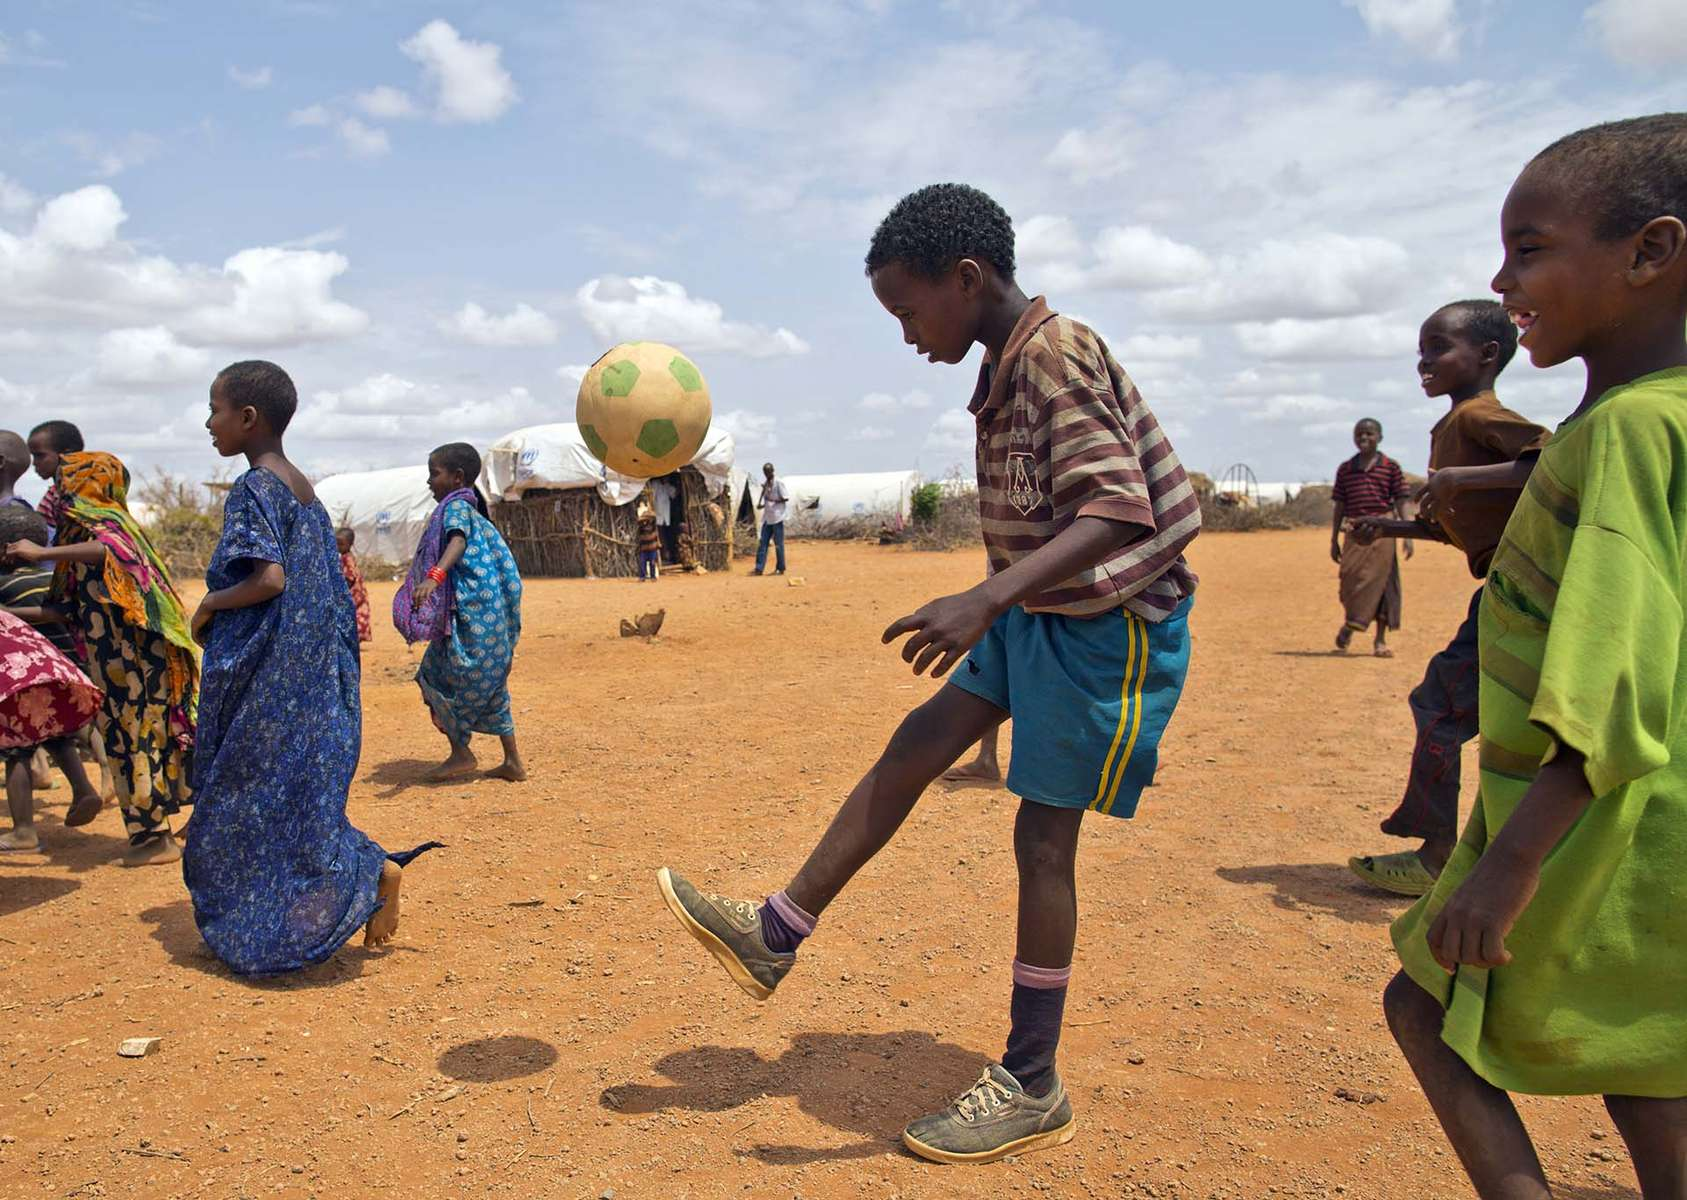 Somali boy works on his footwork at Kobe refugee camp in Ethiopia. Ethiopia/ Somali refugees / J. Ose / June 2012